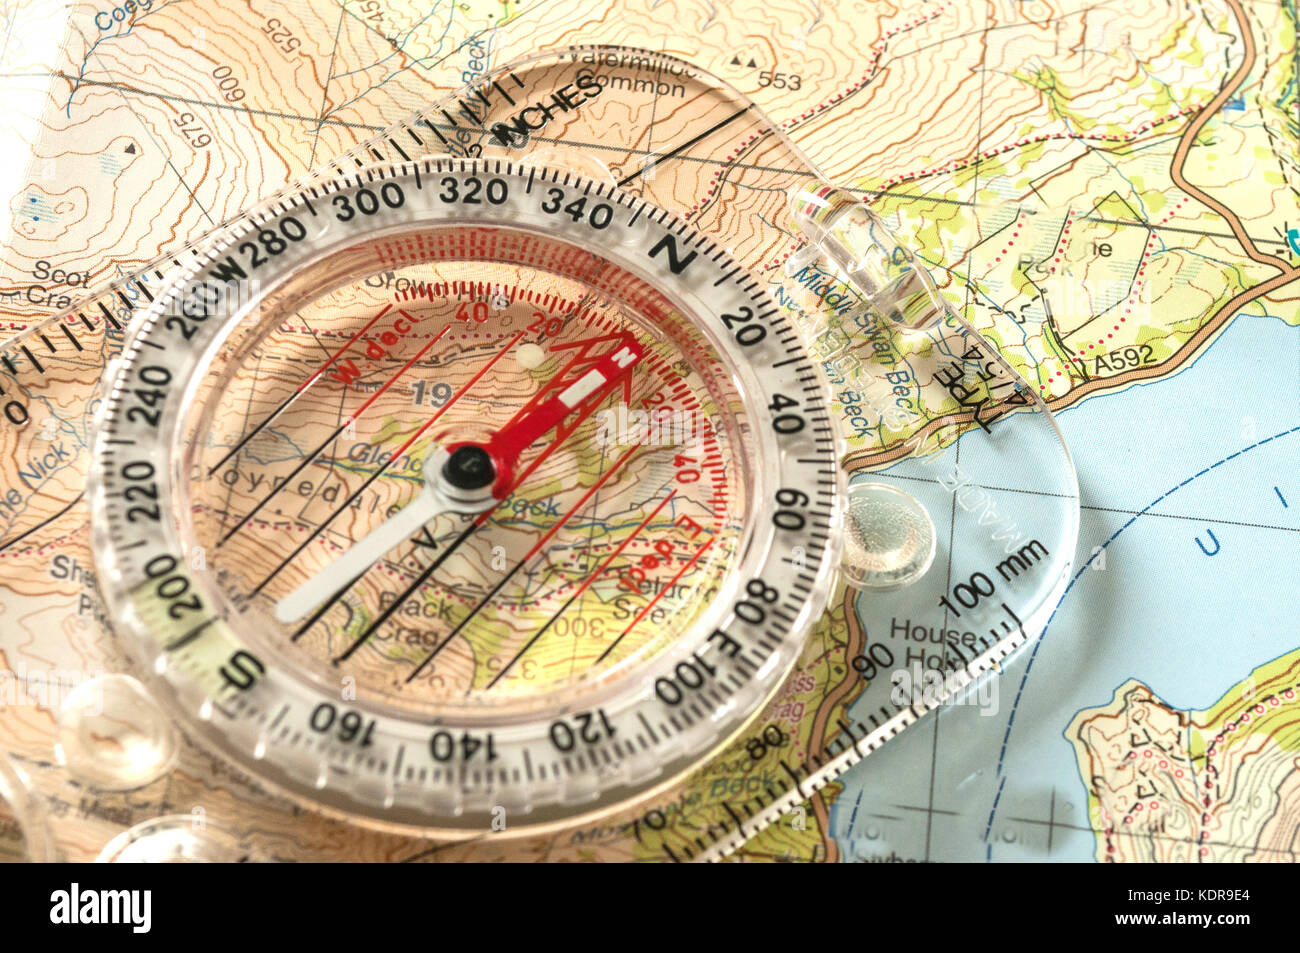 Compass showing direction on Topographic Map, with Rescue Whistle, Shallow Depth of Field - Stock Image